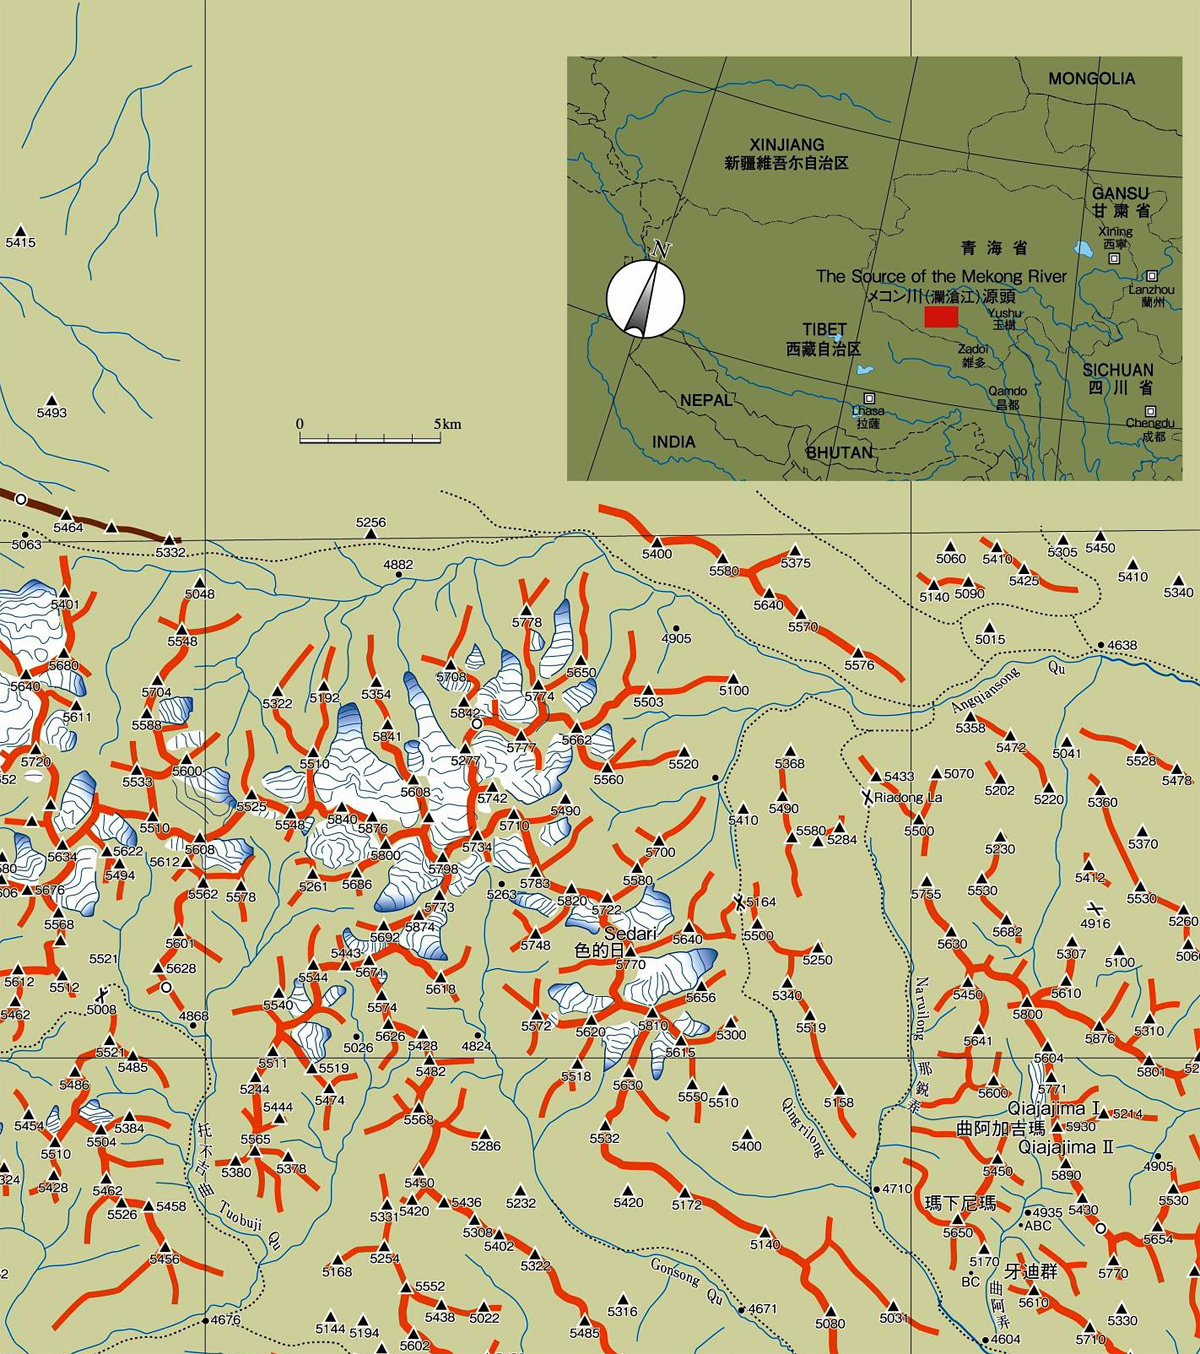 Tom Nakamura's sketch map of the mountains of the Mekong headwaters.